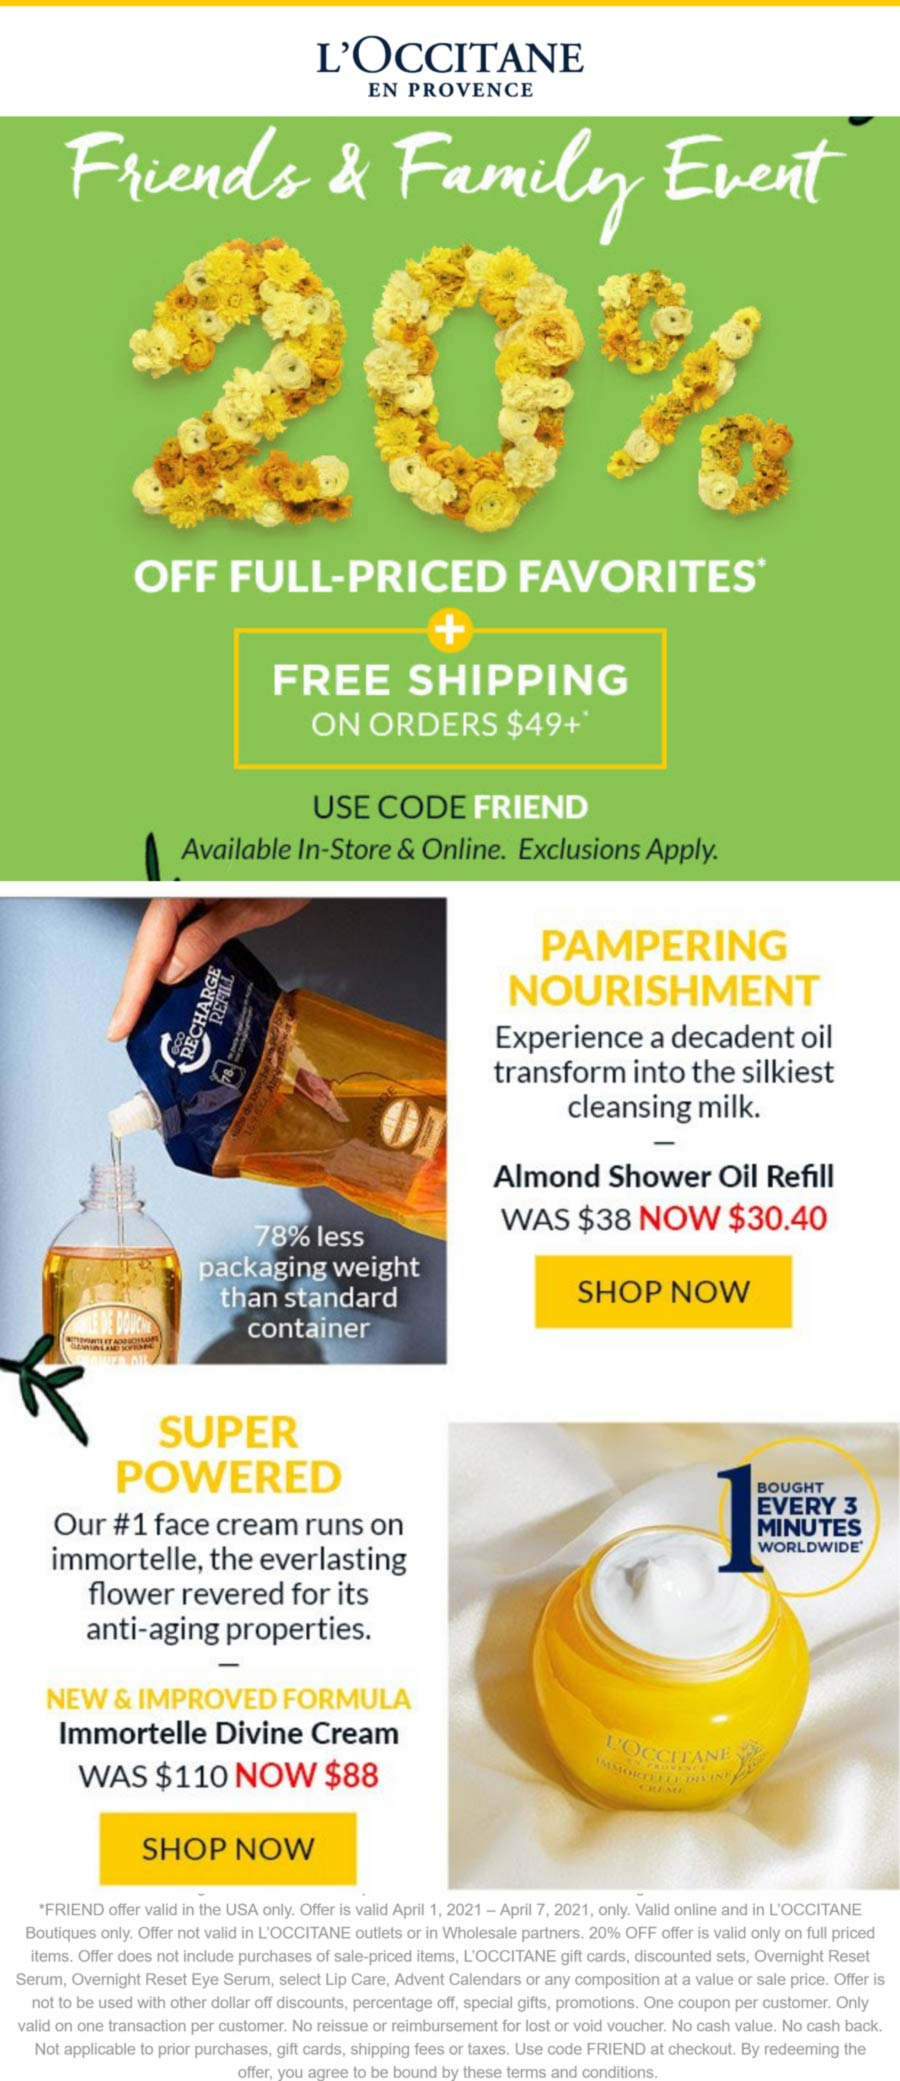 LOccitane coupons & promo code for [April 2021]